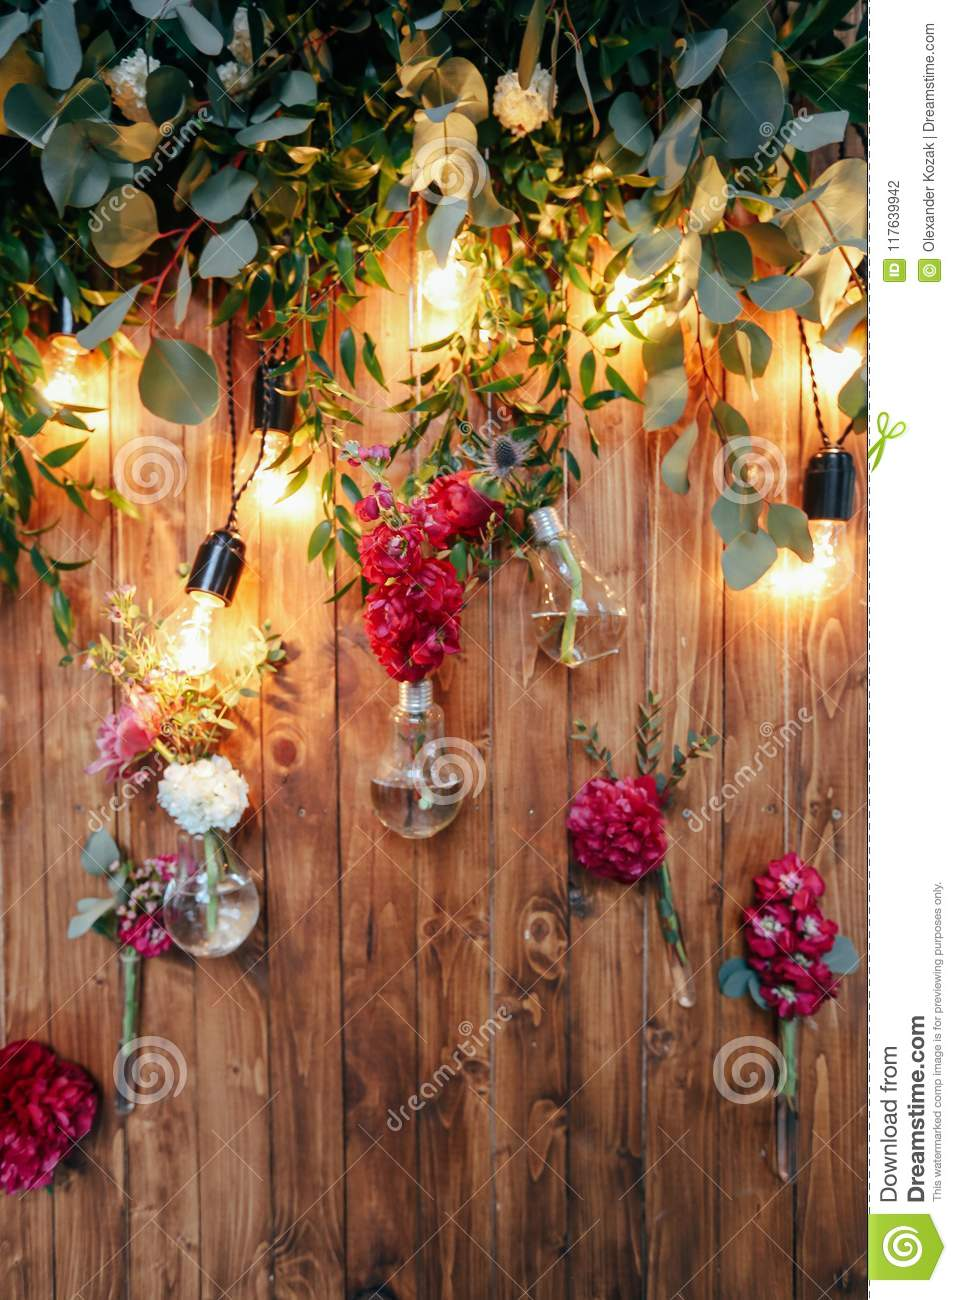 Rustic Wedding Photo Zone Hand Made Wedding Decorations Includes